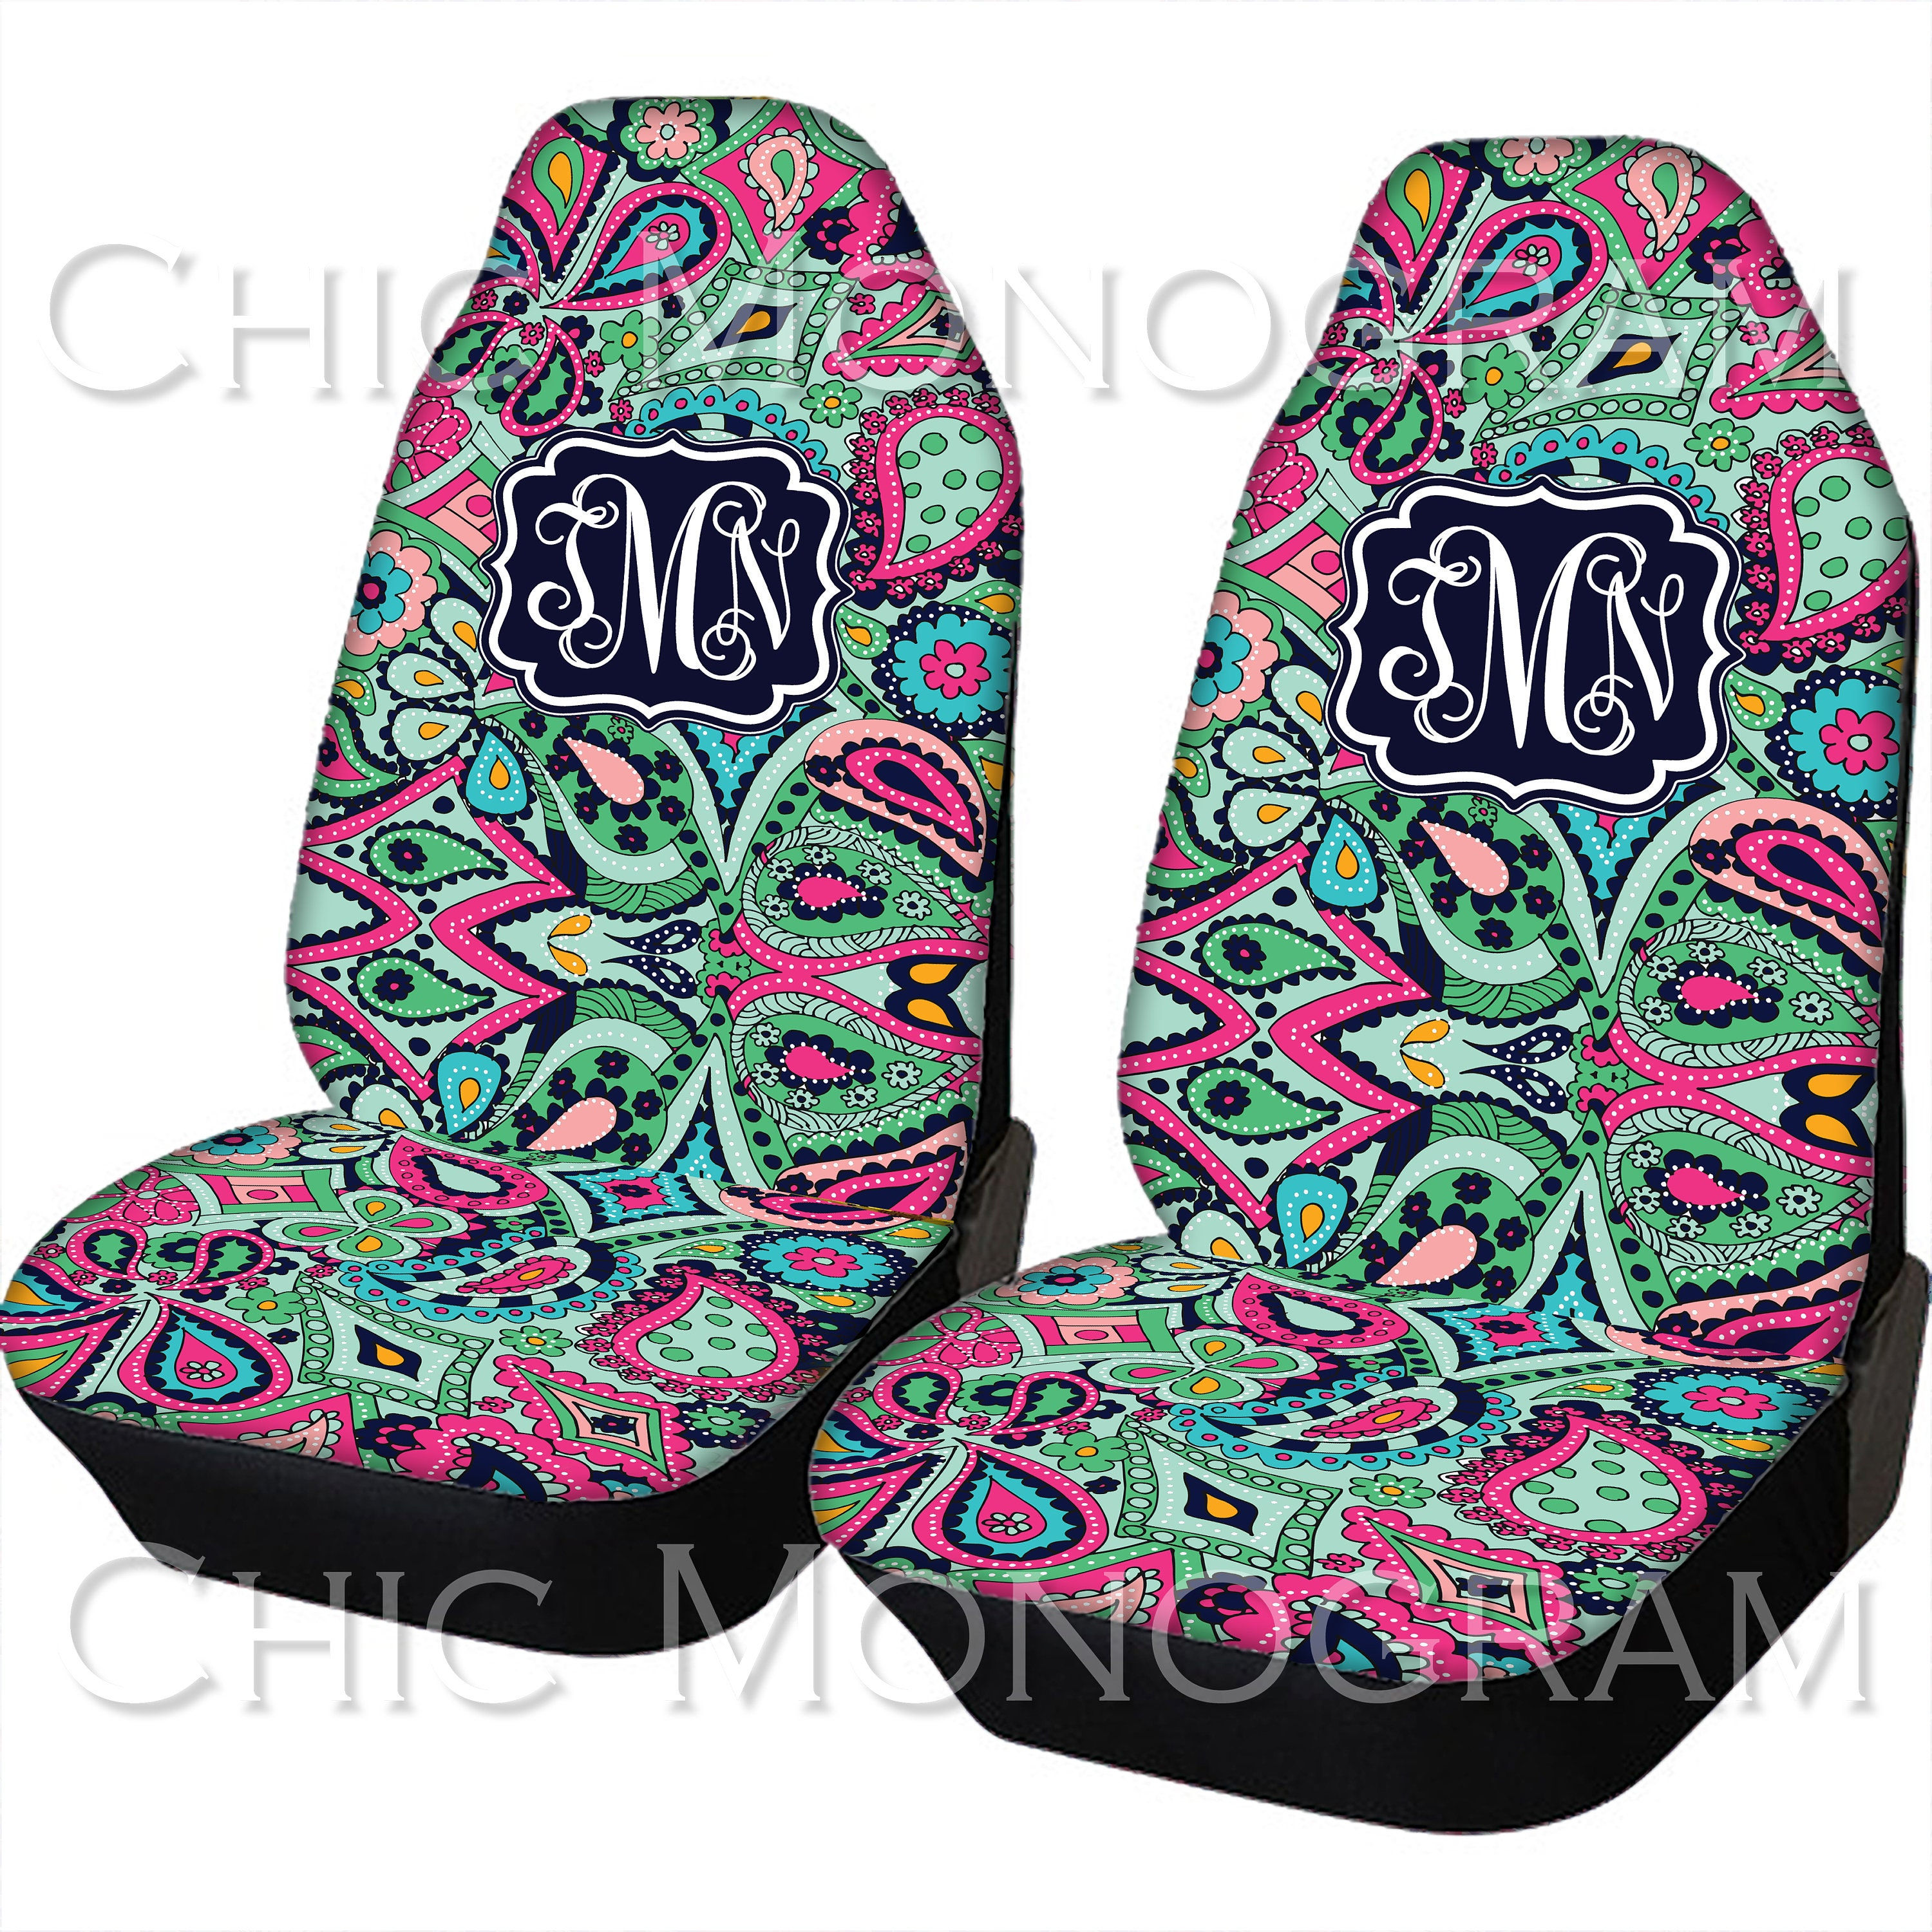 seat covers for vehicle paisley jewels car seat covers front seat back seat cover monogram. Black Bedroom Furniture Sets. Home Design Ideas